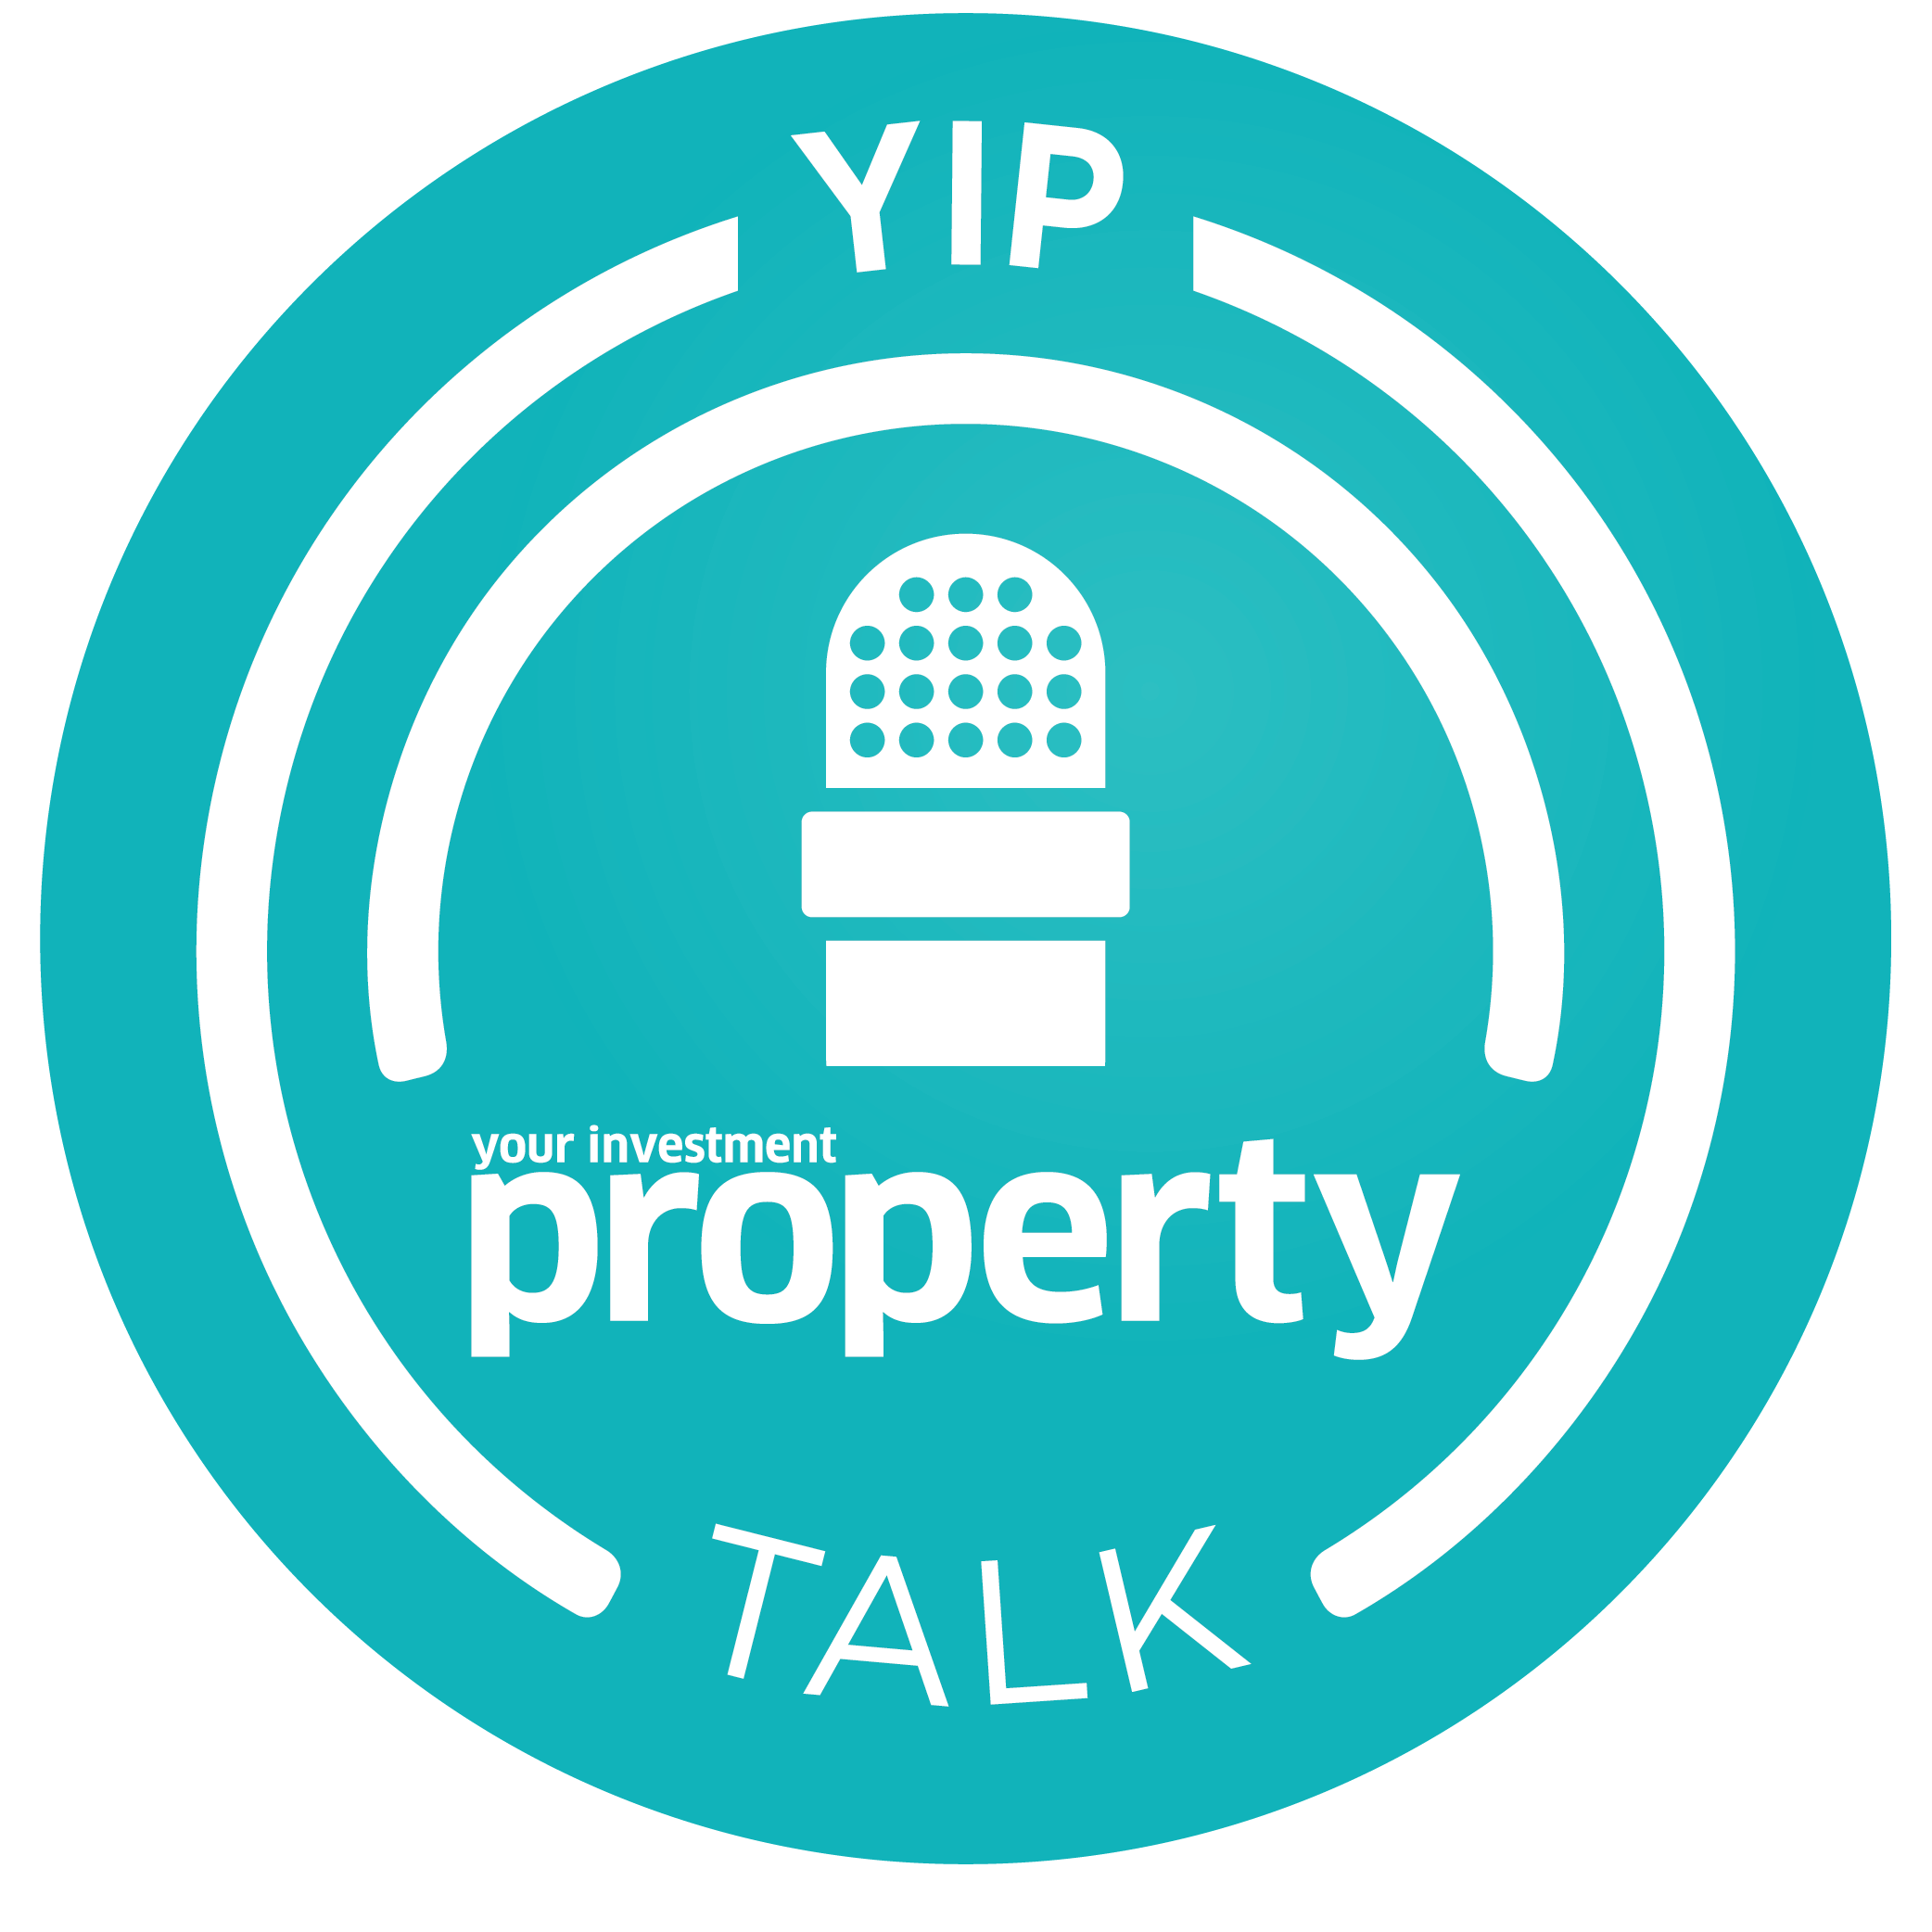 Episode 11 - December 2019 - The results of this year's Property Investment Sentiment Survey